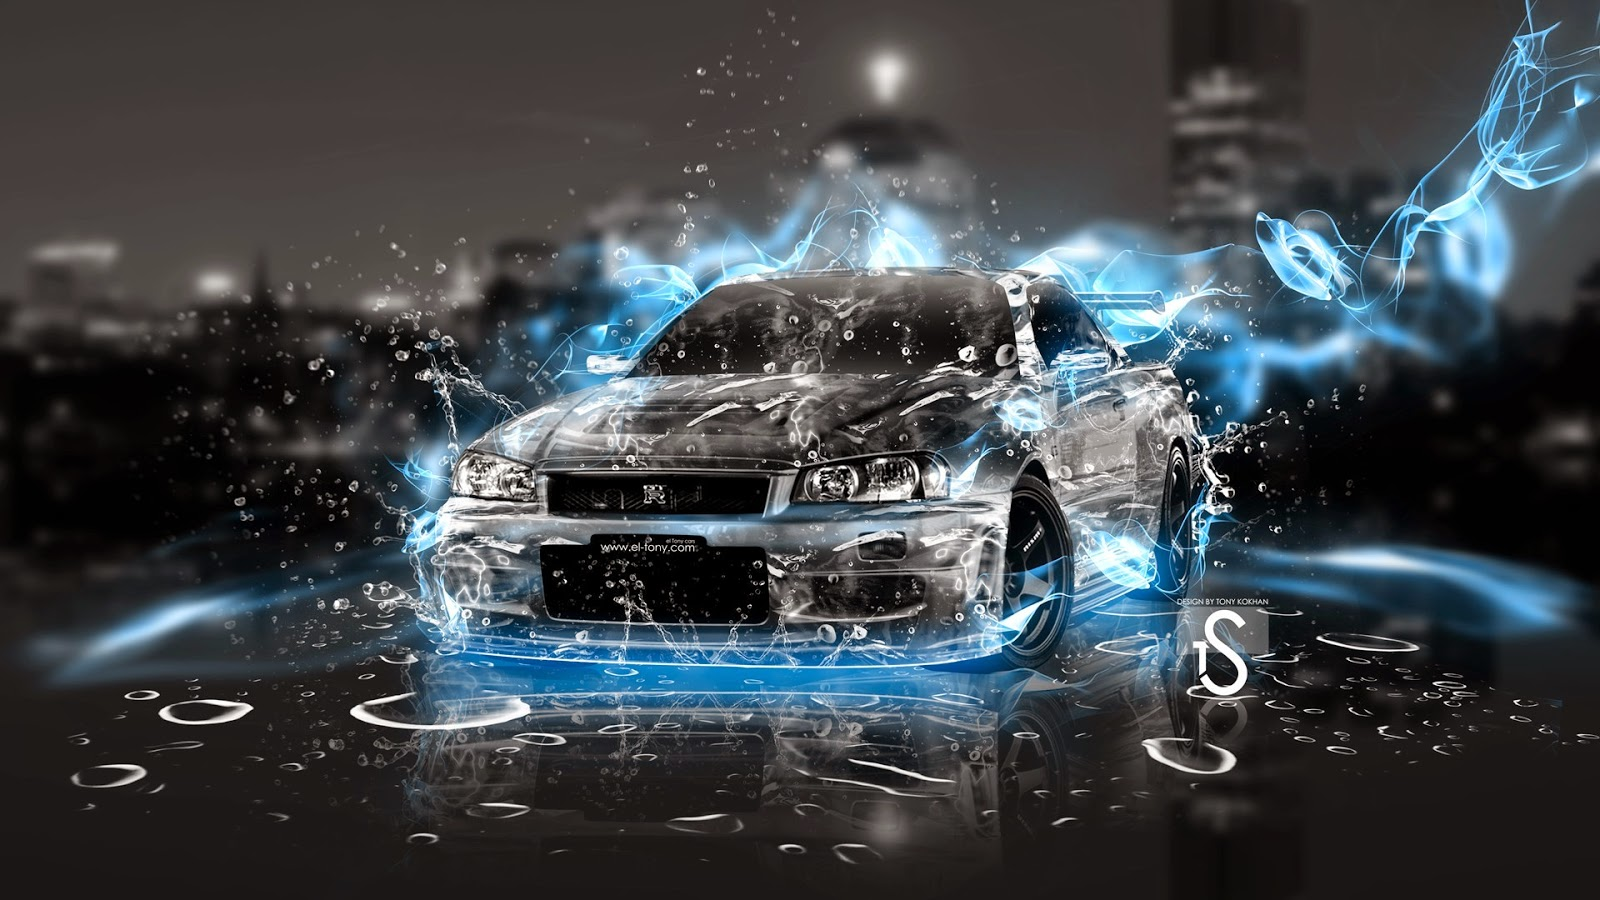 Free 4d Wallpaper Cool Wallpapers Car With Blue Fire